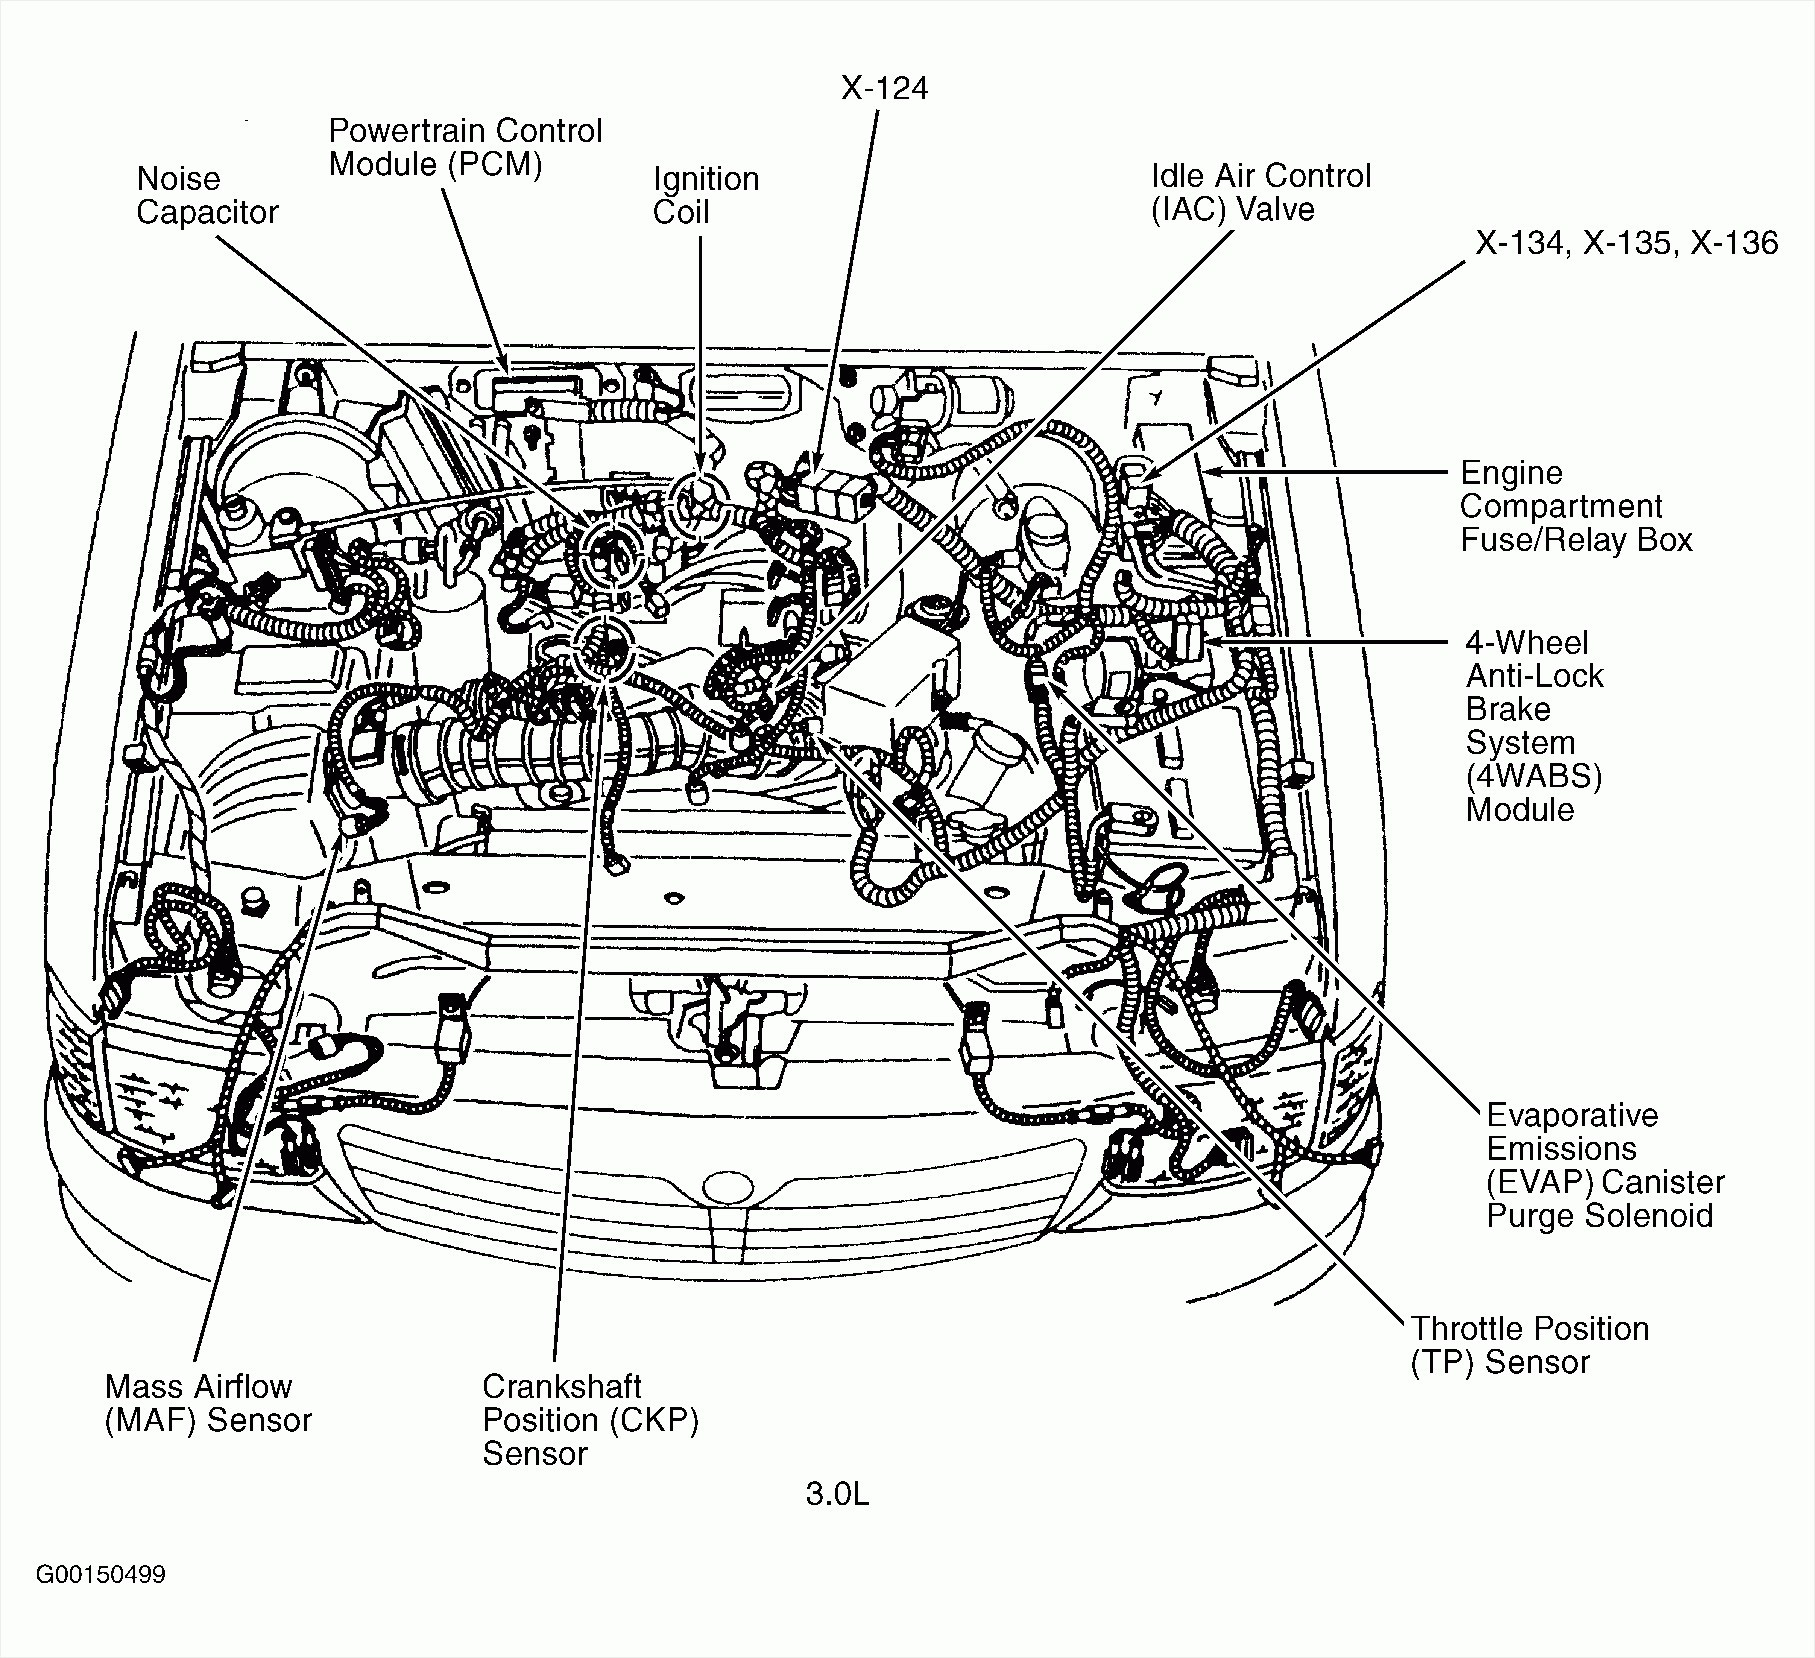 hight resolution of 97 taurus wiring diagrams wiring diagram 97 taurus engine diagram